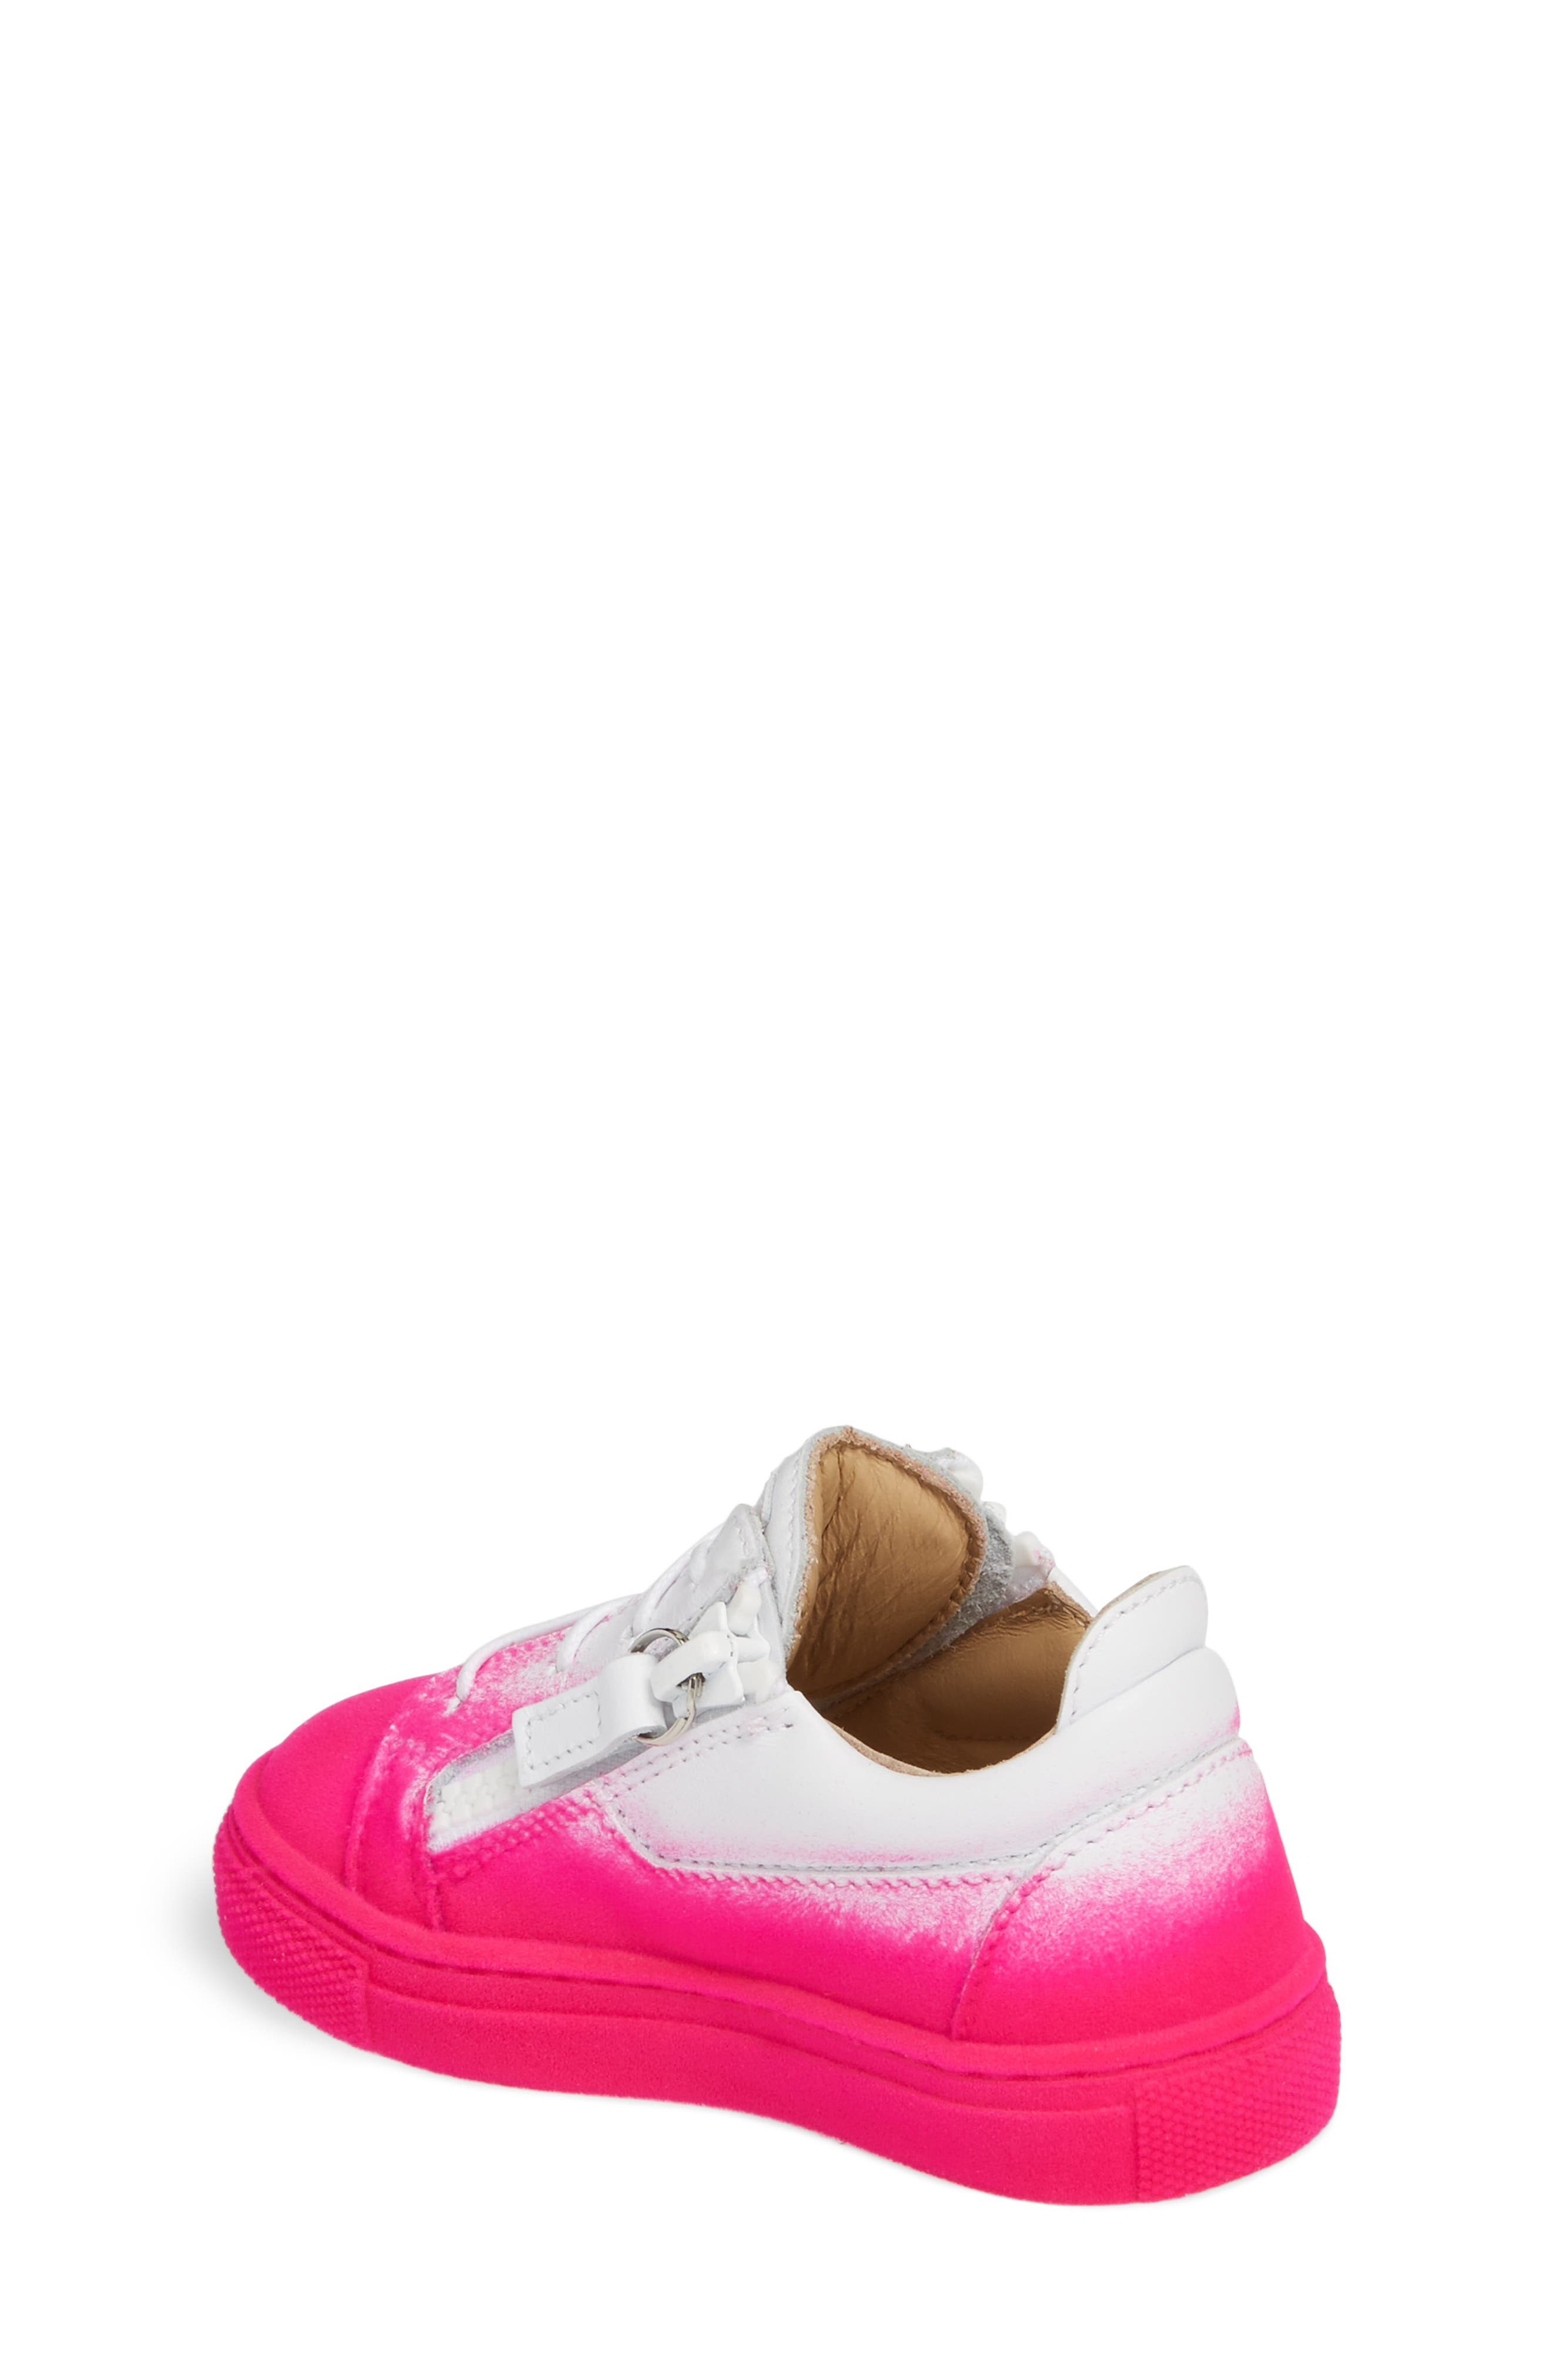 Alternate Image 2  - Giuseppe Zanotti Smuggy Ombré Flocked Sneaker (Baby, Walker, Toddler & Little Kid)